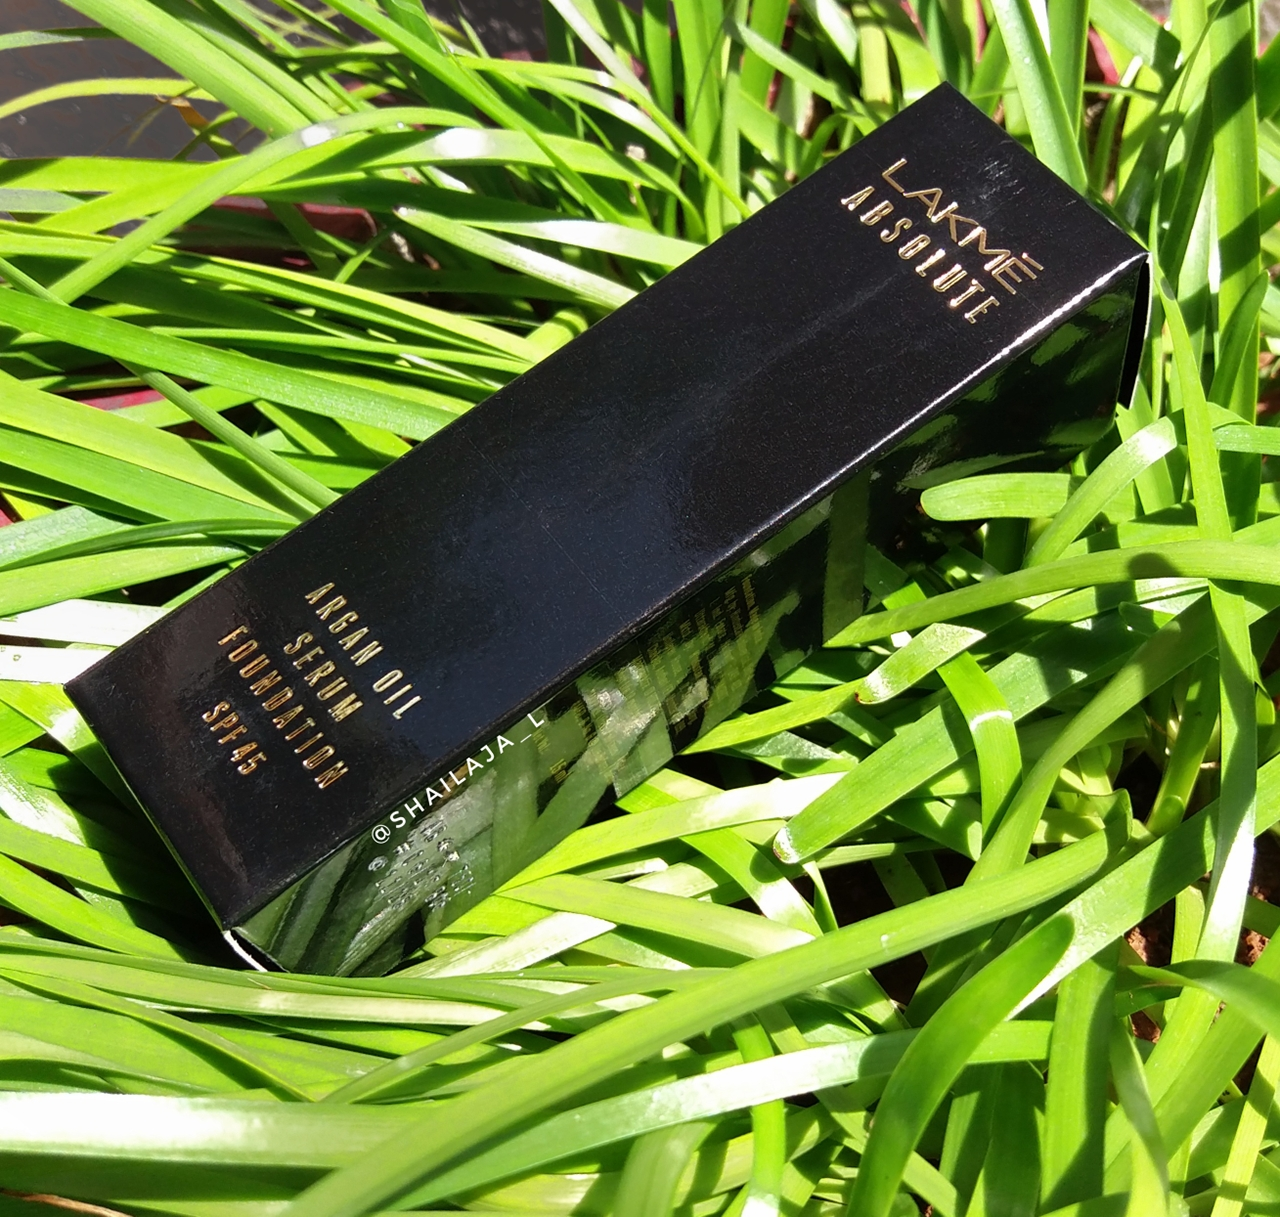 LAKME ABSOLUTE ARGAN OIL SERUM FOUNDATION REVIEW